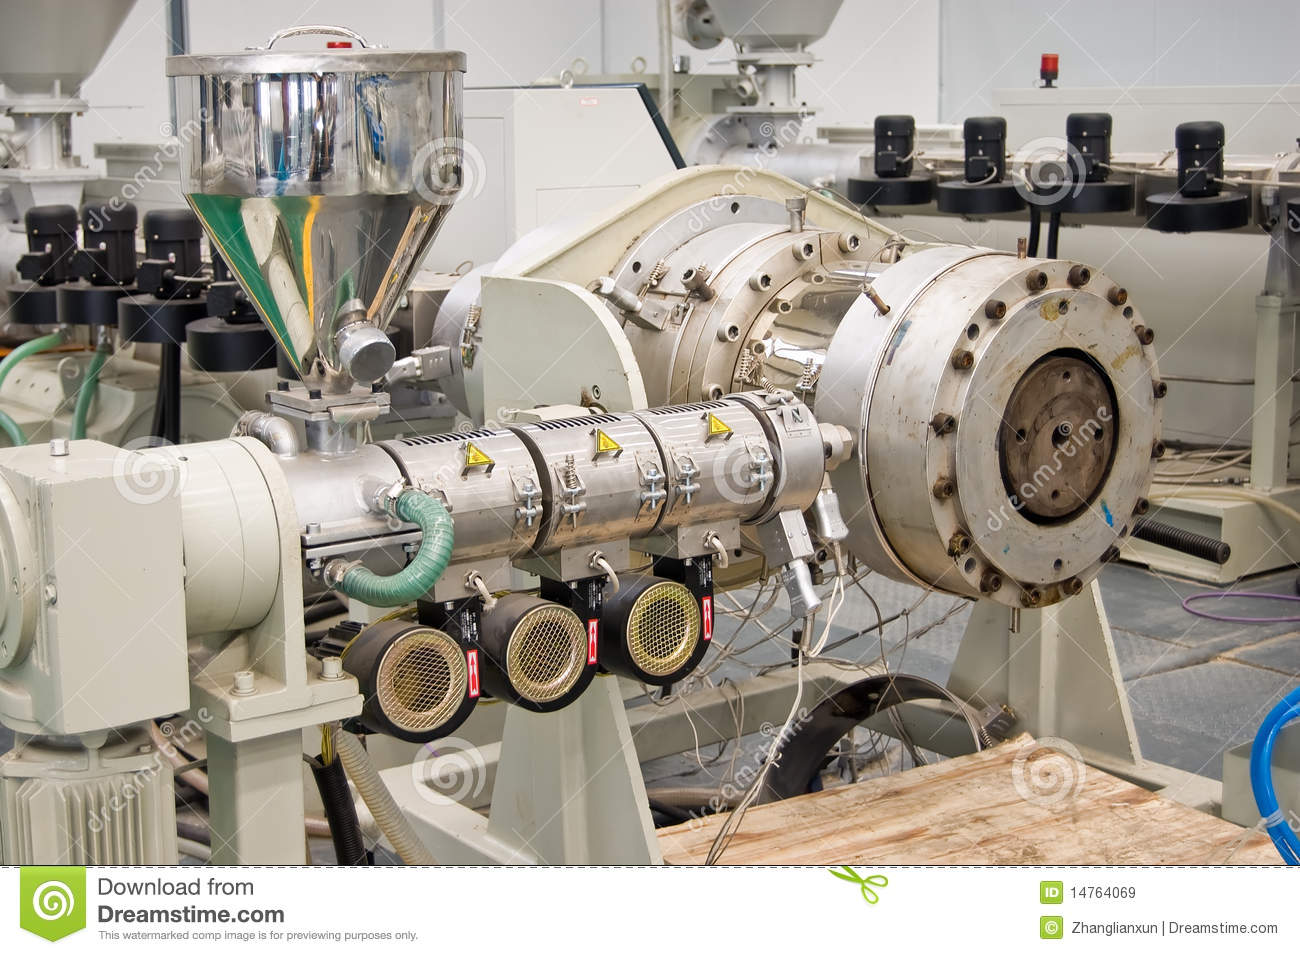 Factory Equipment Royalty Free Stock Images - Image: 14764069